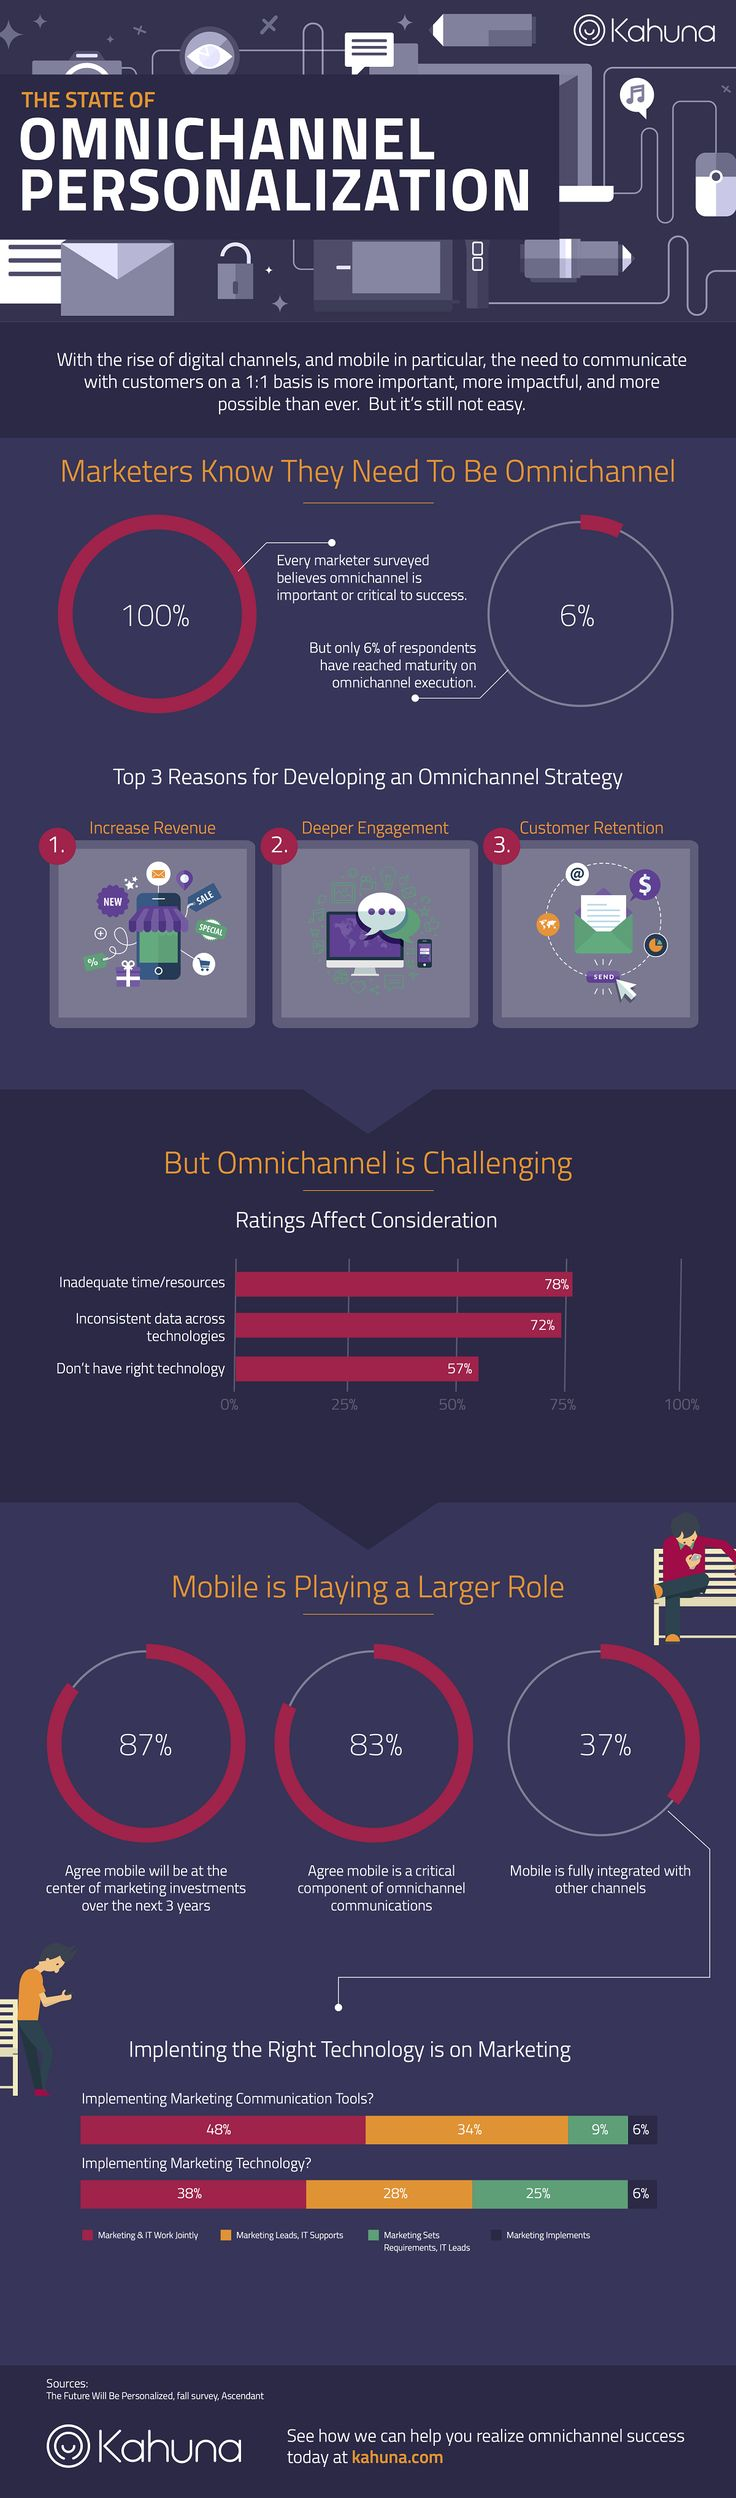 The State of Omni channel Personalization #Infographic #Marketing #OmniChannel